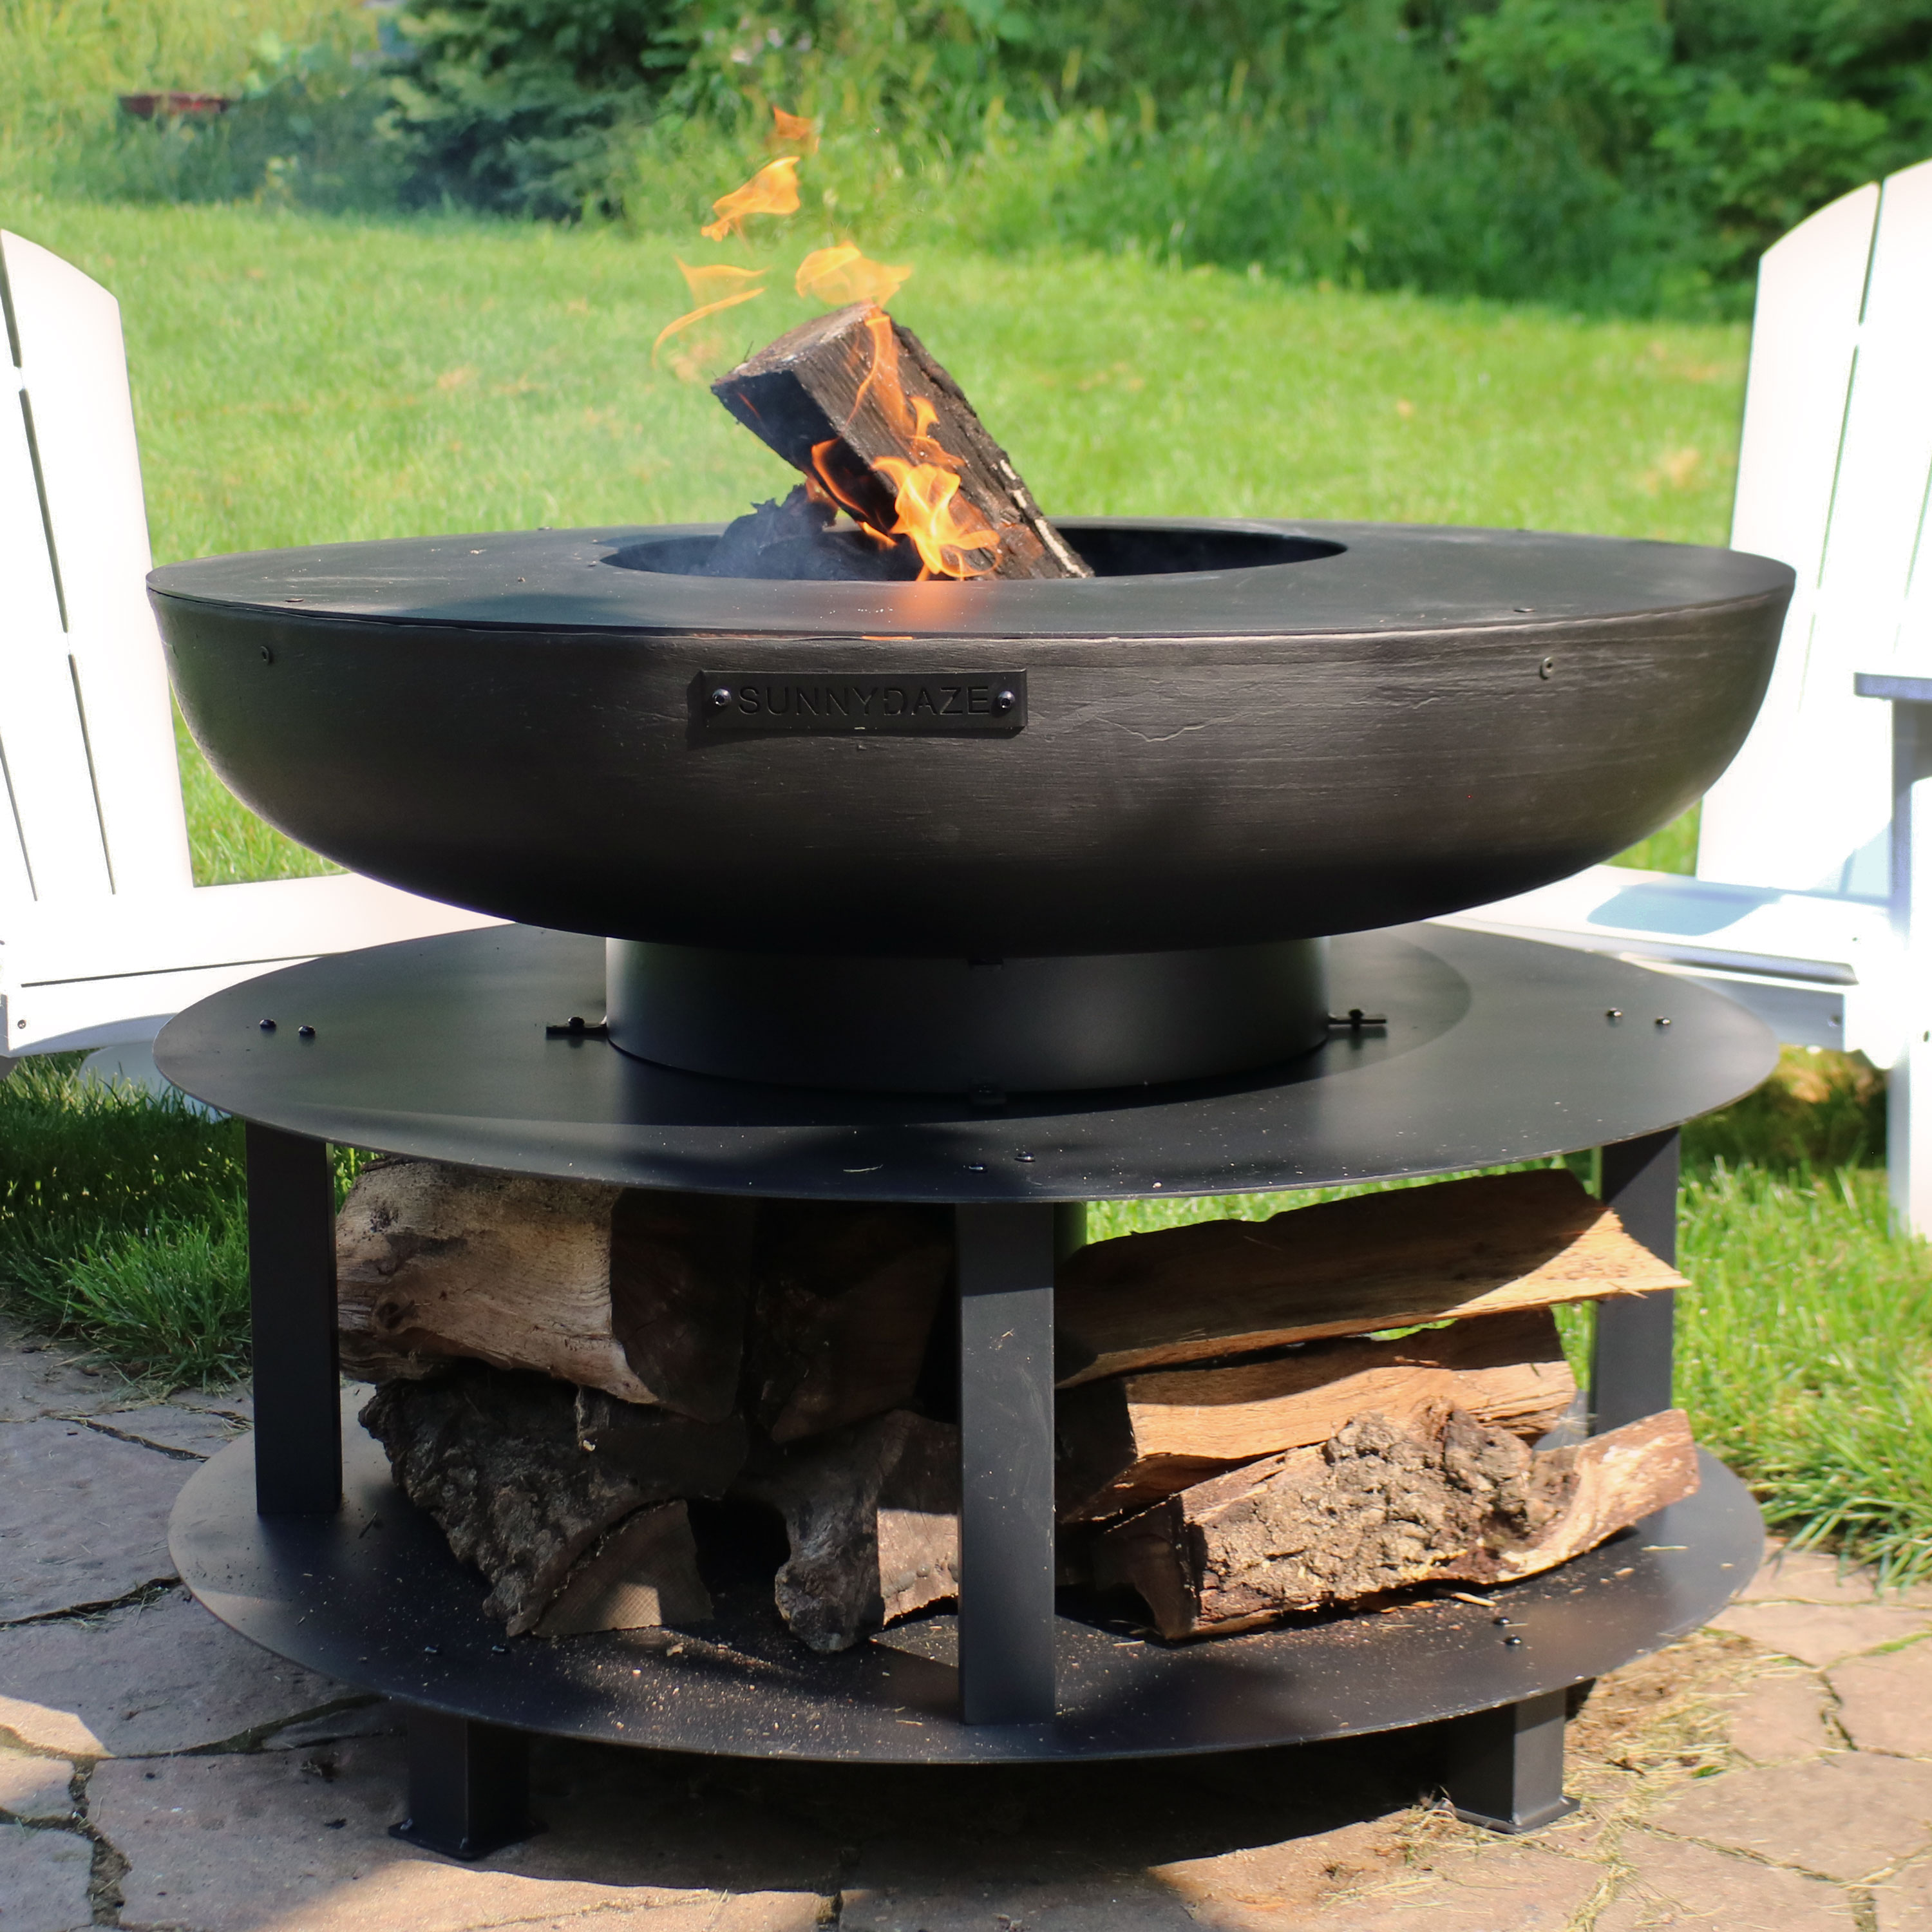 Sunnydaze Large Outdoor Fire Pit with Cooking Ledge and ...